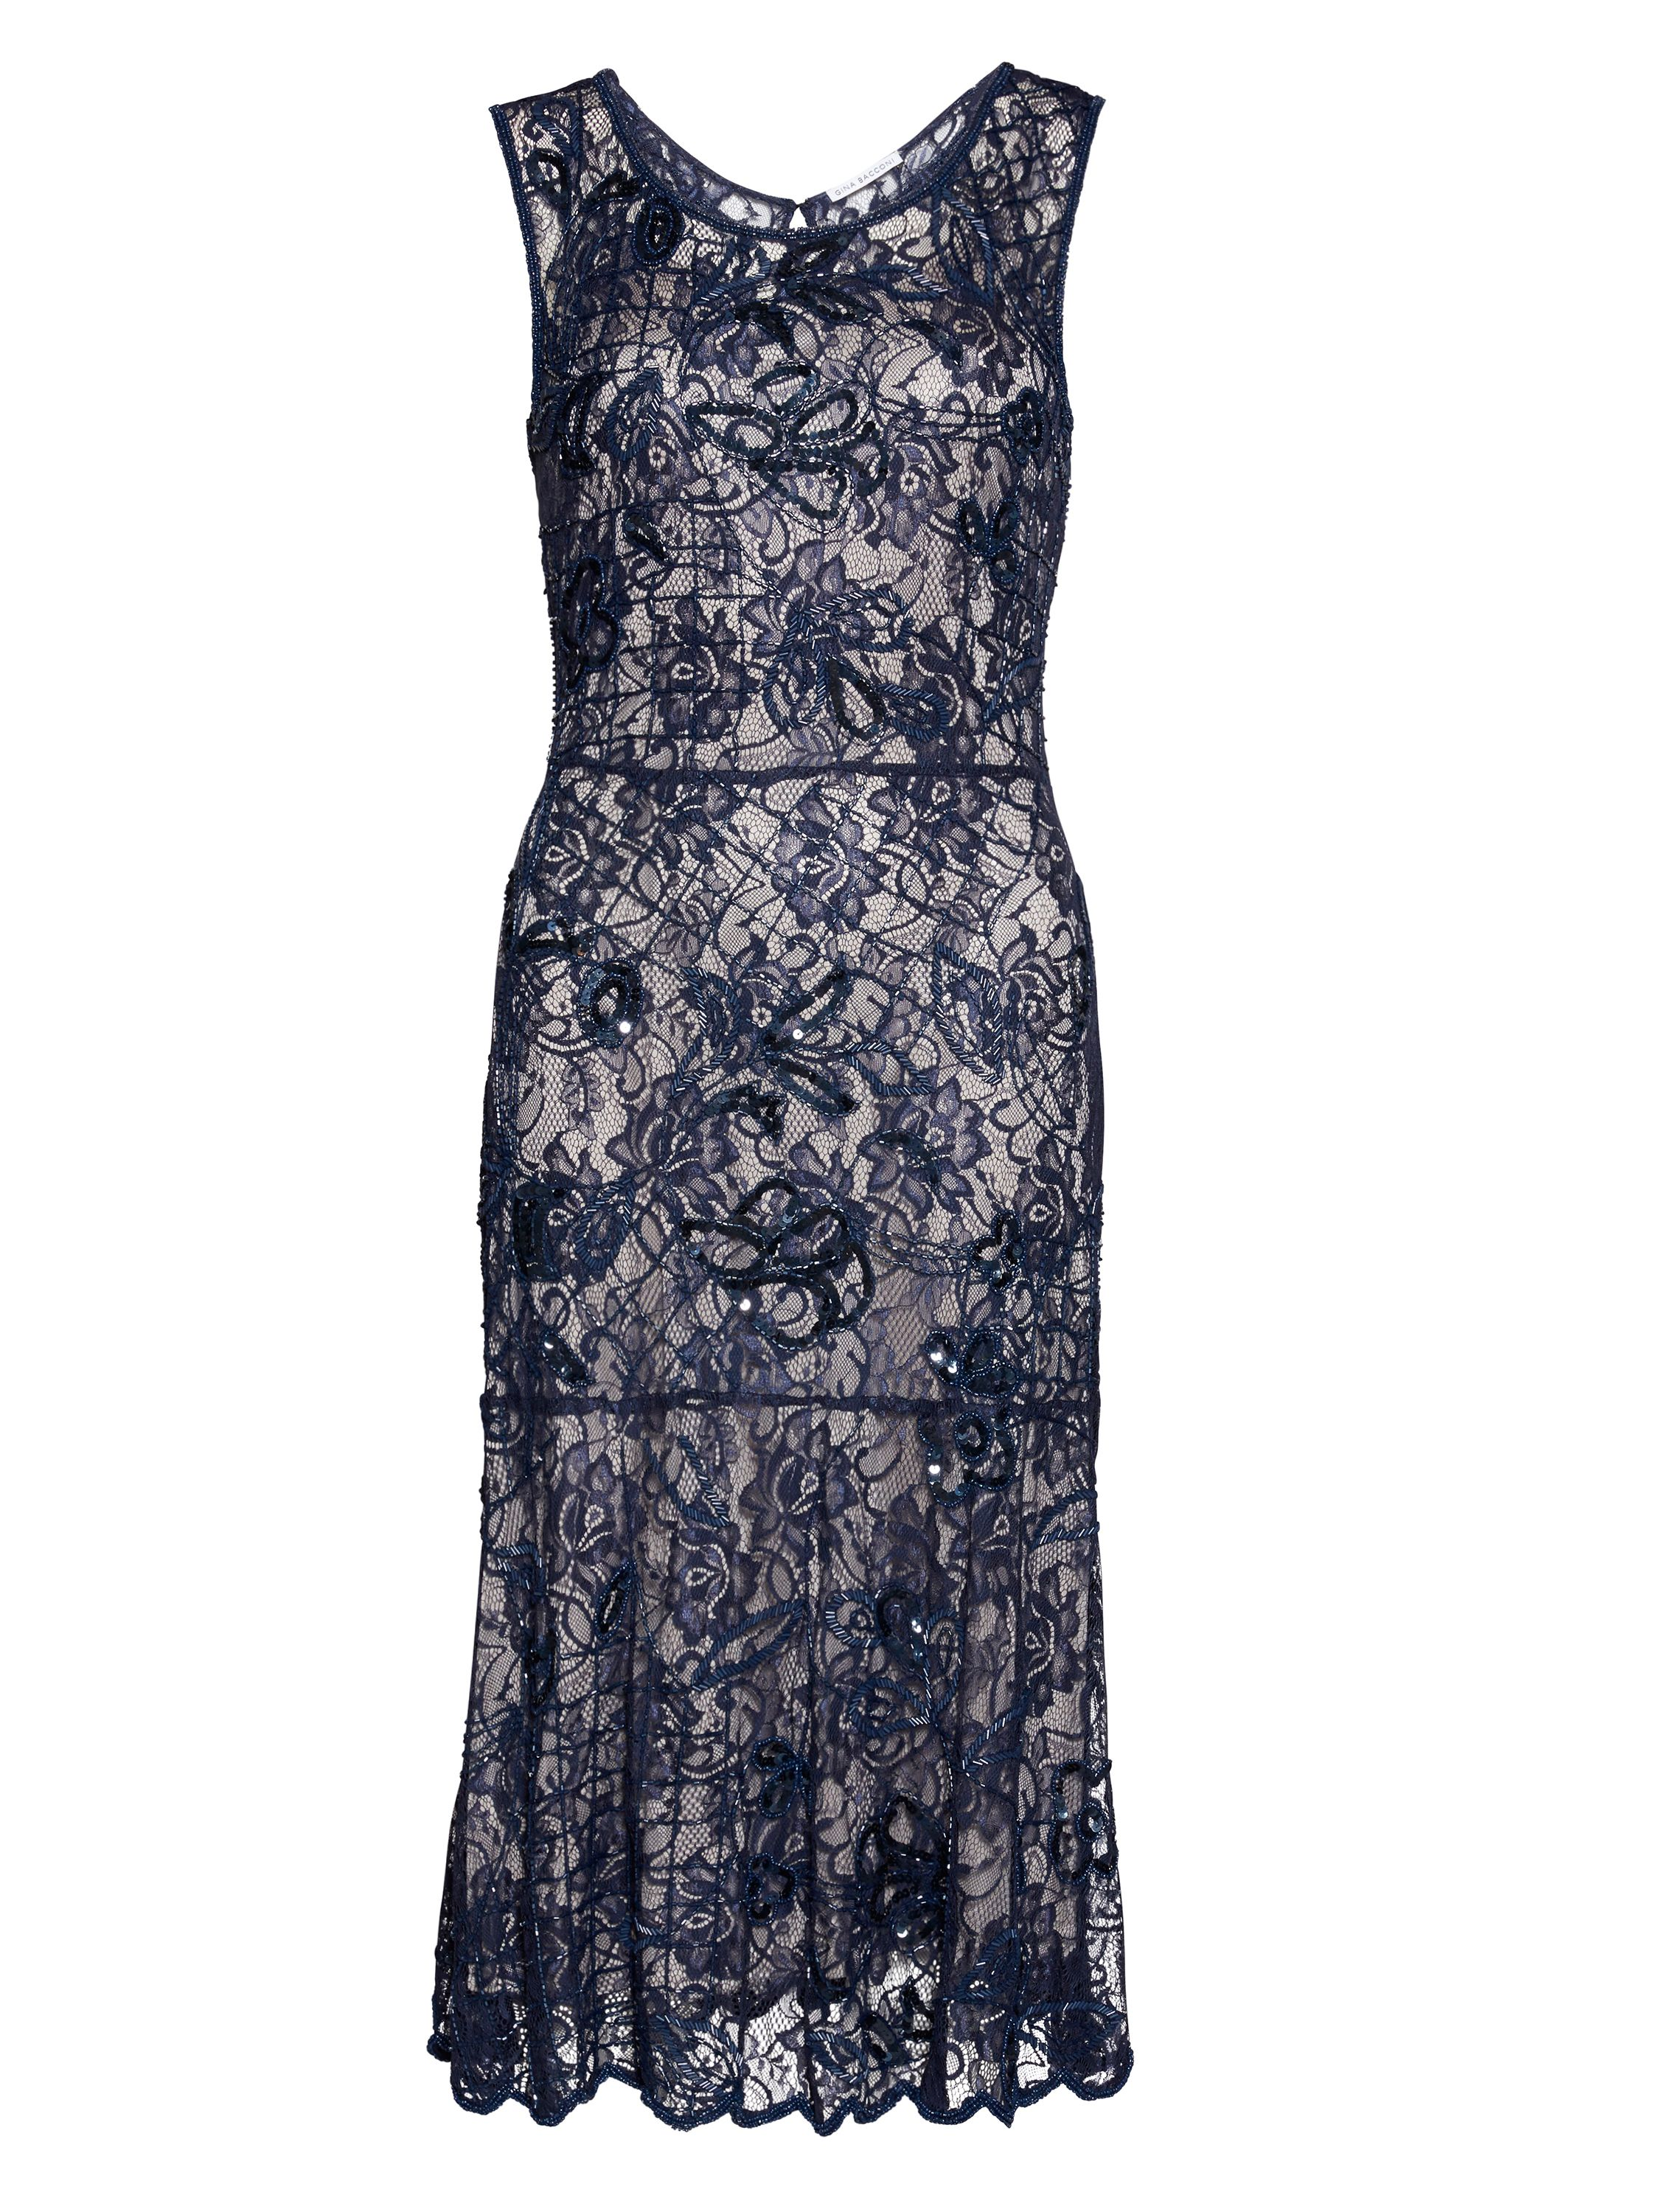 Gina Bacconi Beaded lace dress with slip, Blue